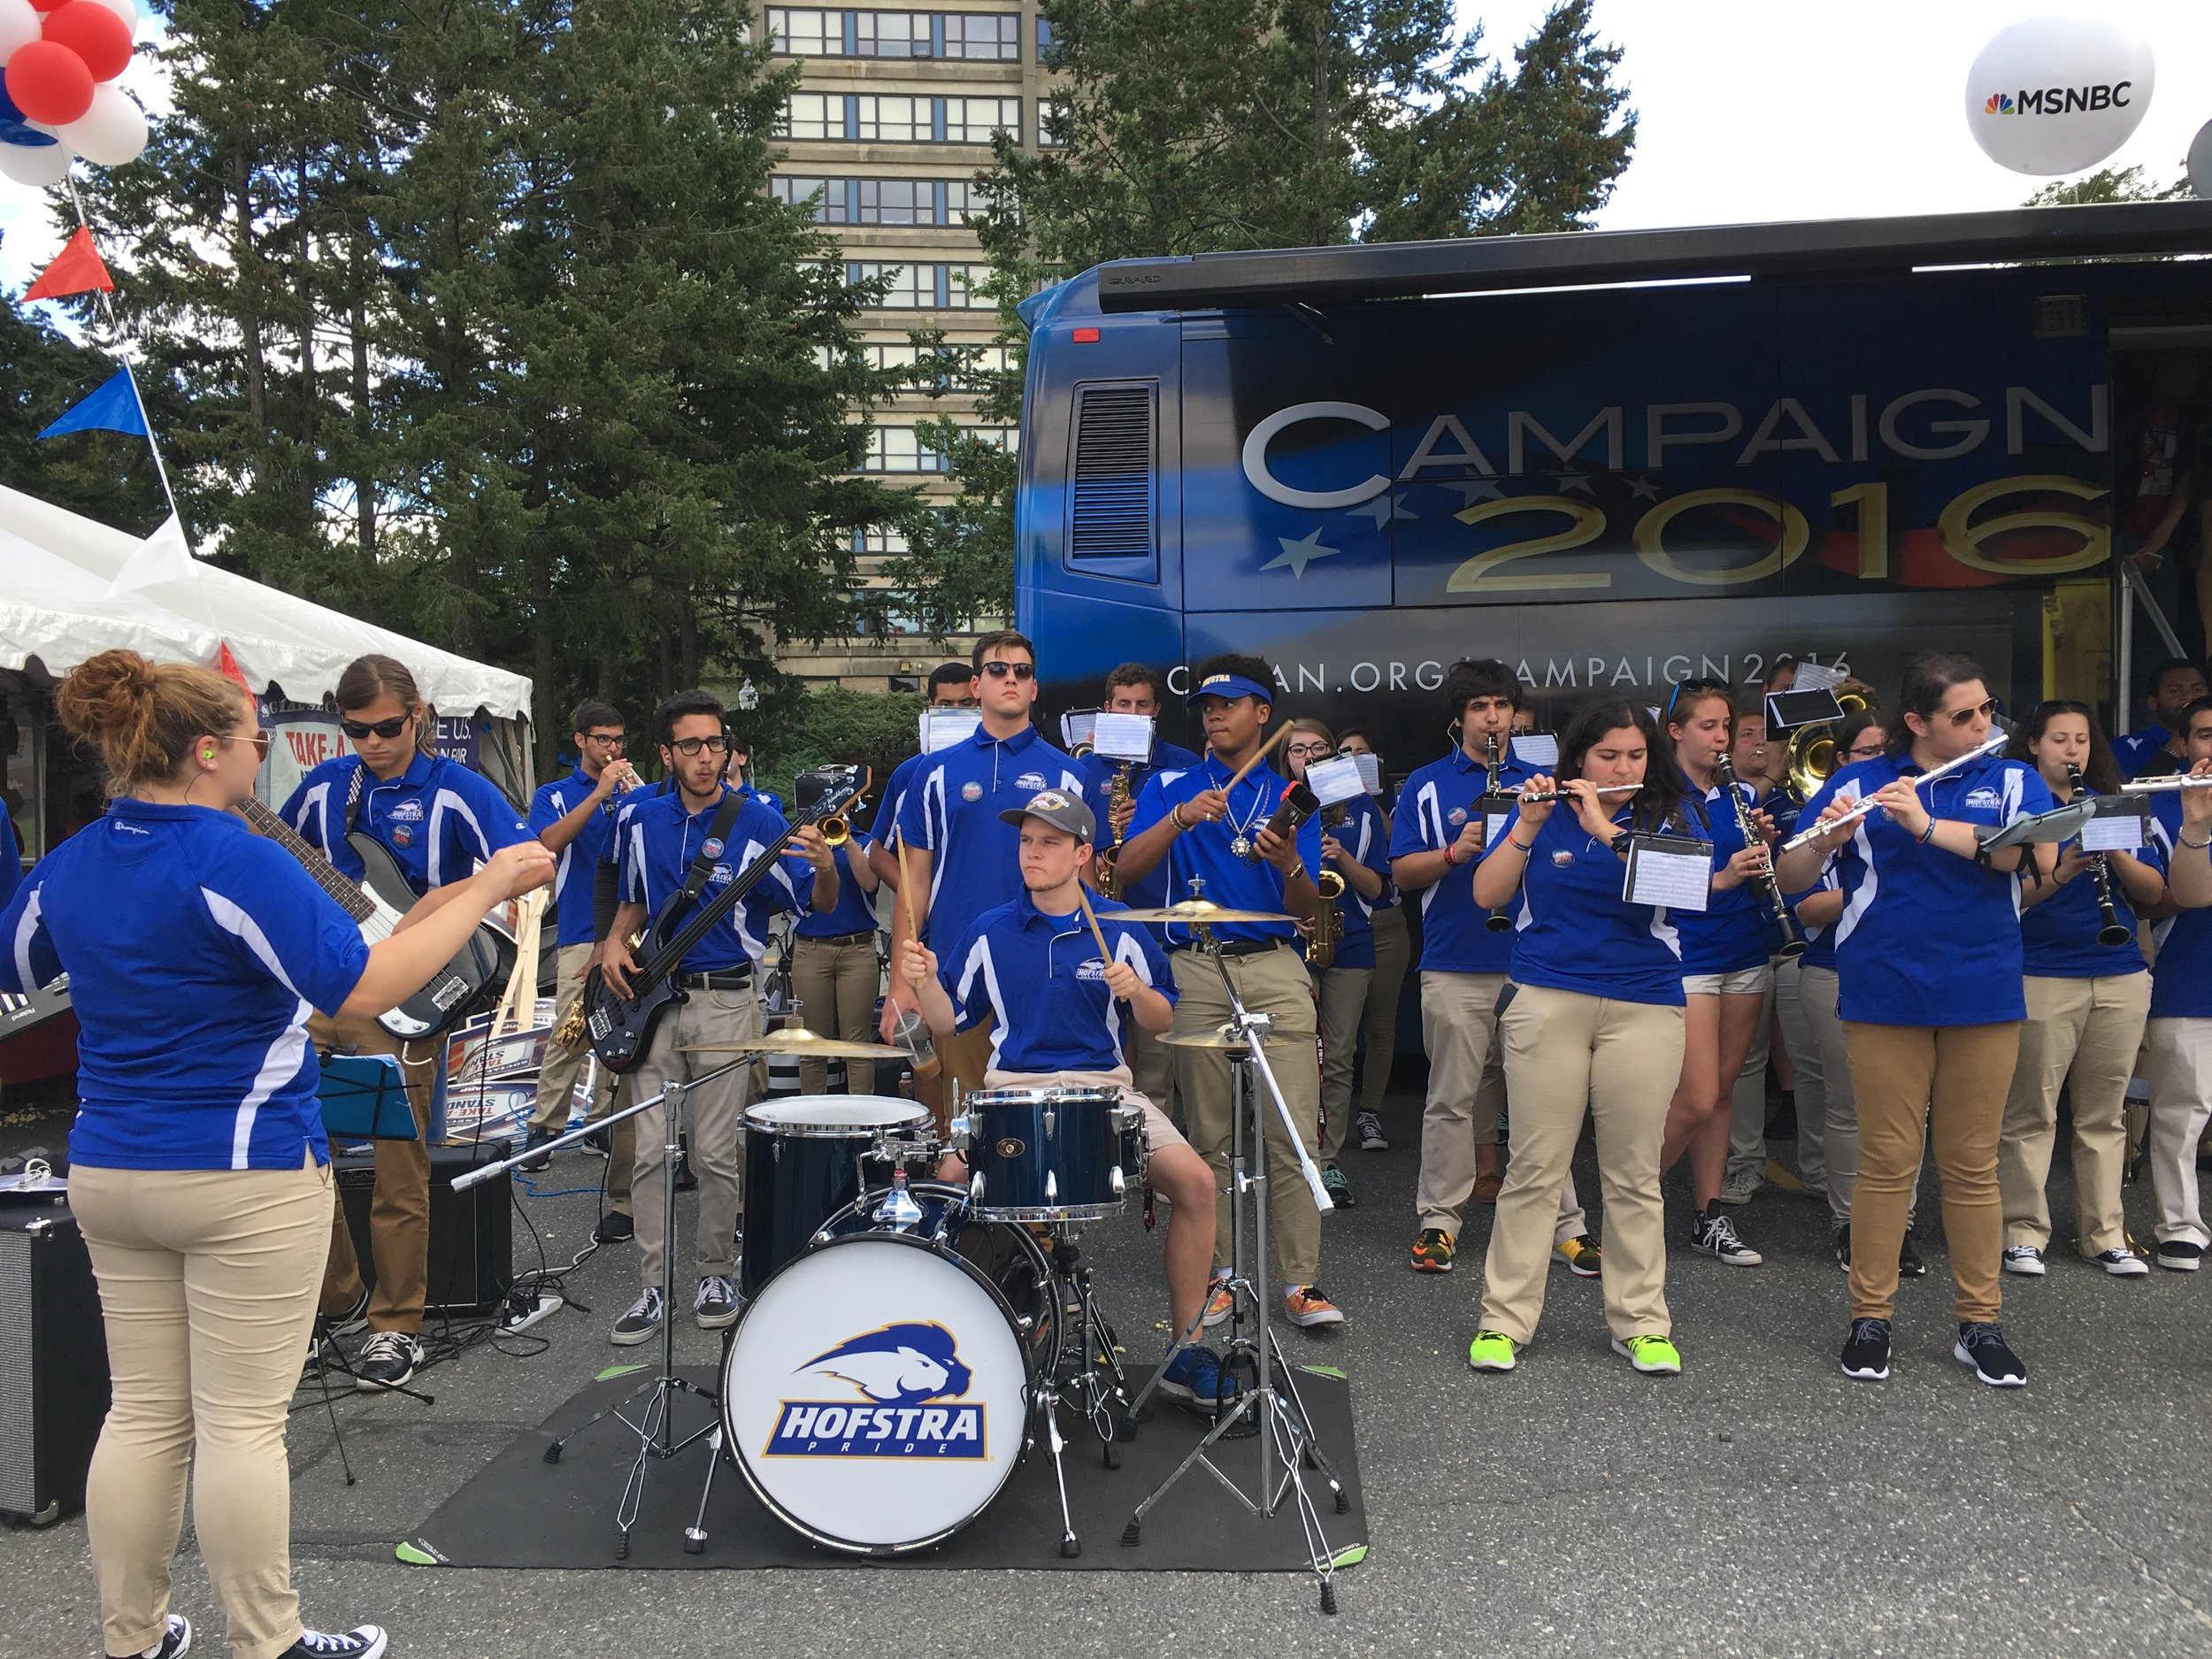 The pep band plays at soccer games, basketball games and other university events throughout the year. (Photo courtesy of Samantha Filippone)